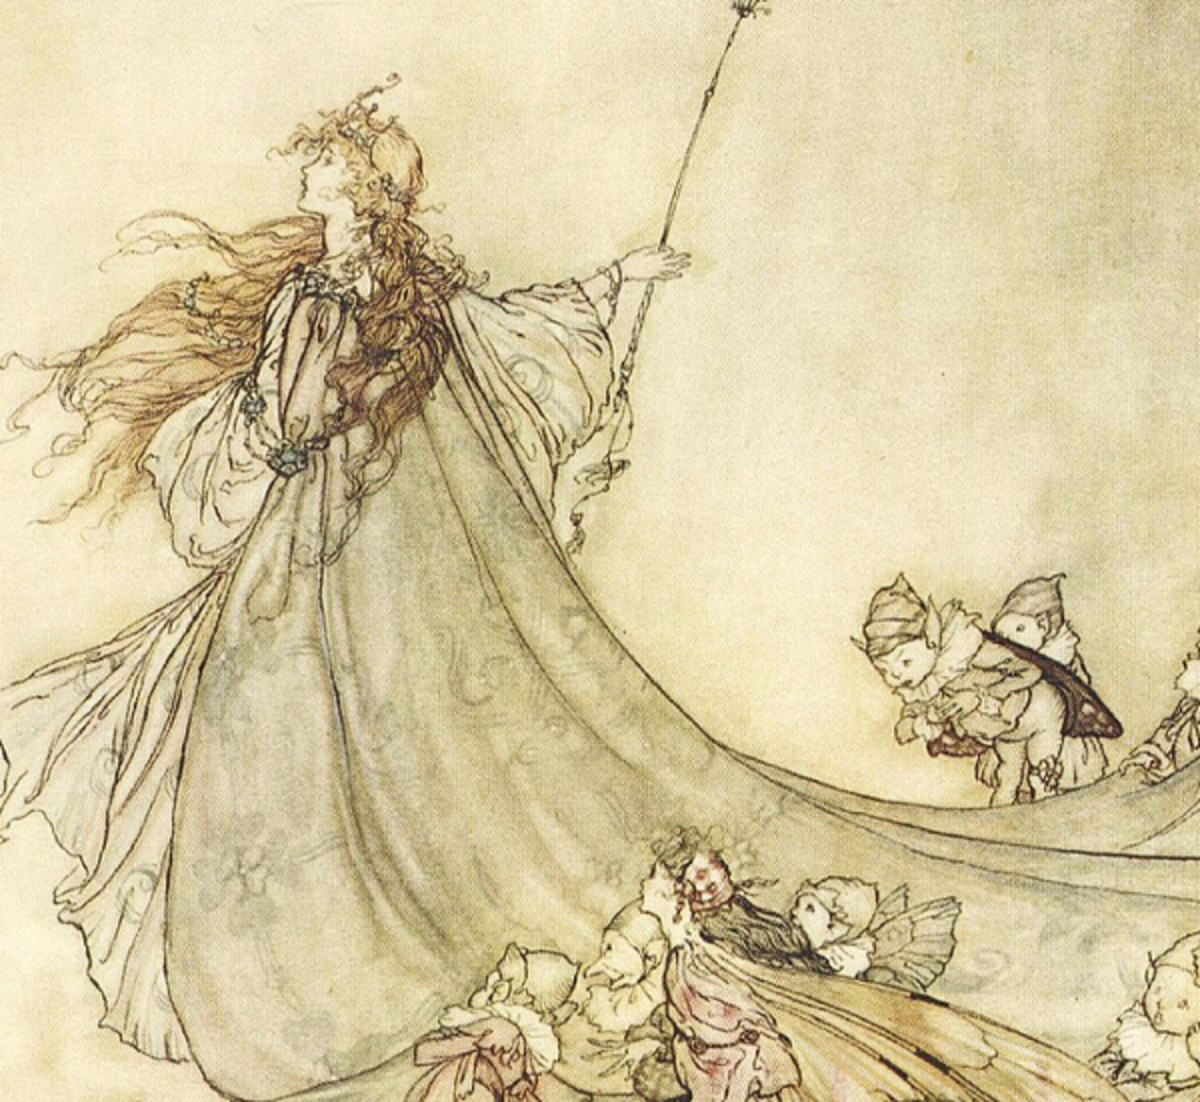 "Here we show a portion of '... Fairies, away! We shall chide downright, if I longer stay ...' - a design by Arthur Rackham from his suite published in ""A Midsummer-Night's Dream"" (1908)."